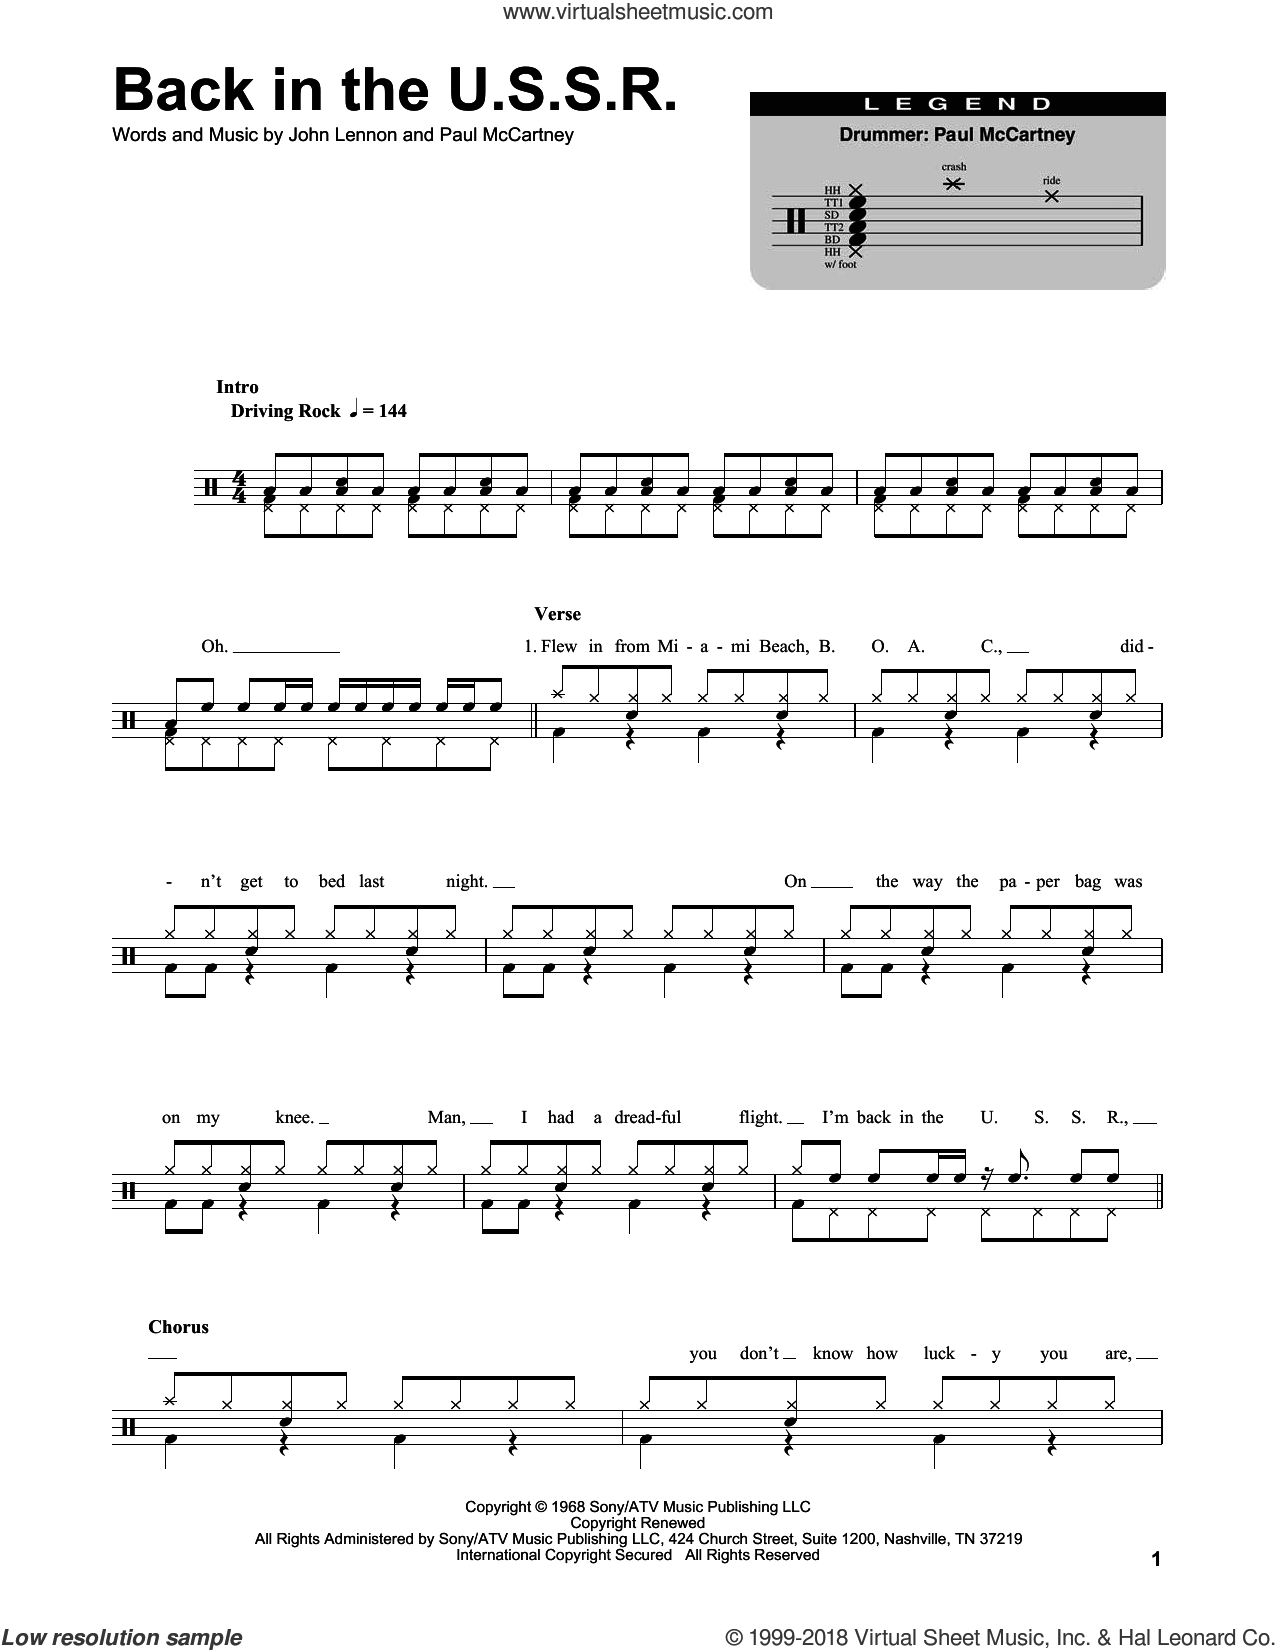 Beatles - Back In The U.s.s.r. Sheet Music For Drums [Pdf] - Free Printable Drum Sheet Music